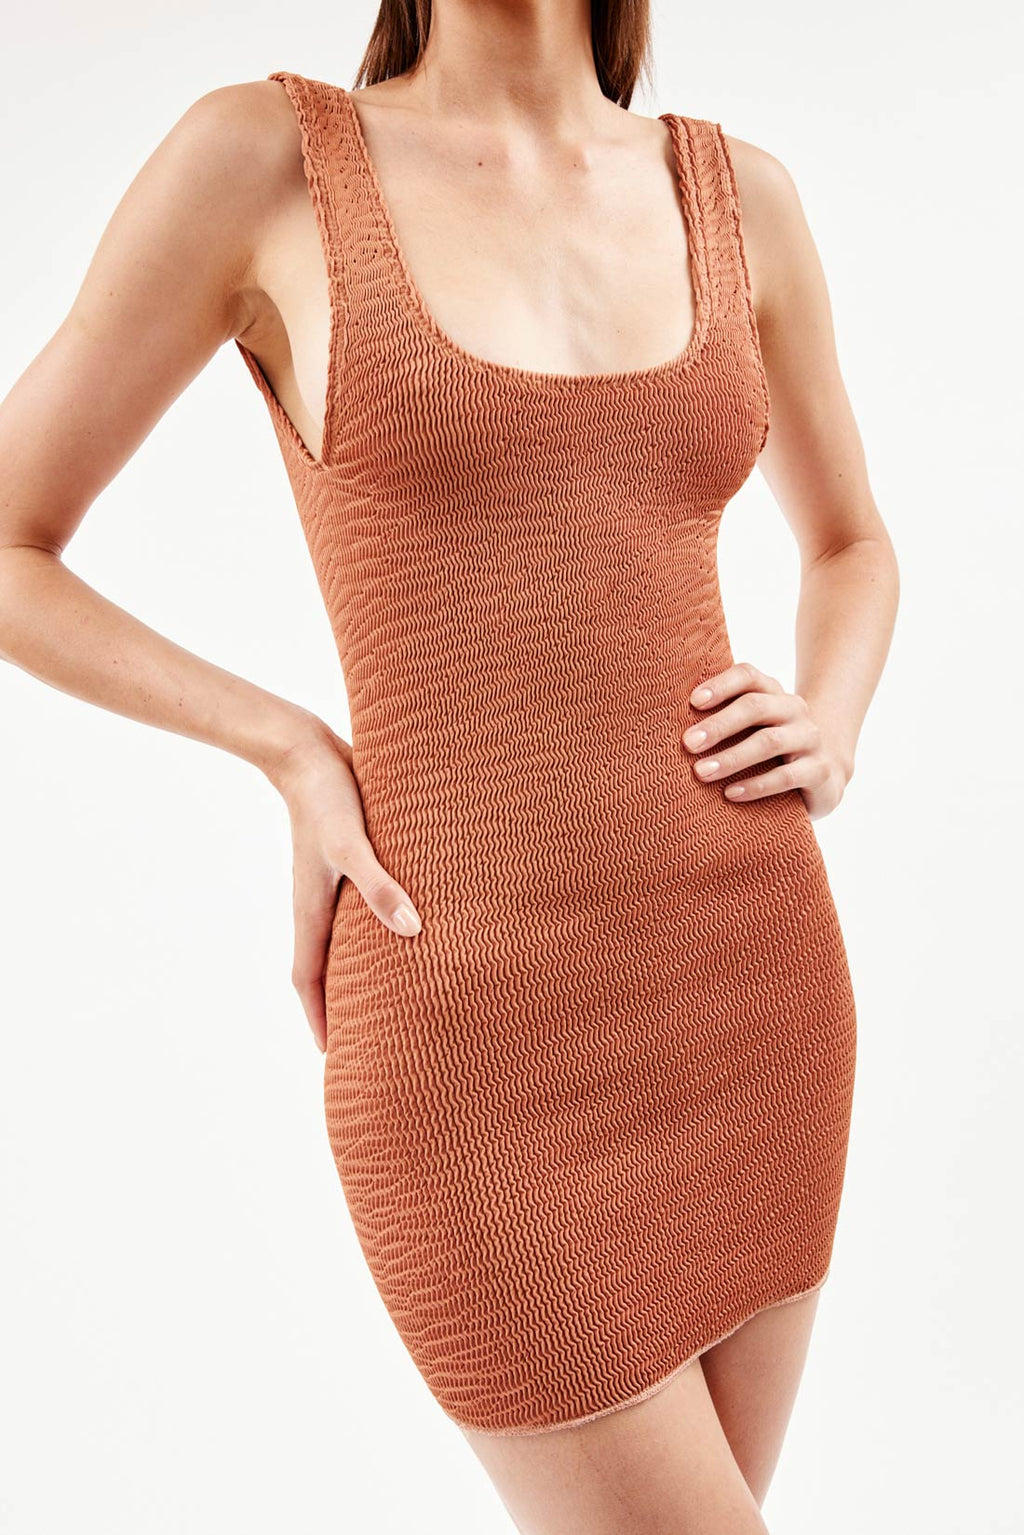 Model wears bronze mini dress featuring low back, over the shoulder straps, scoop neck, sustainable crinkle fabrication